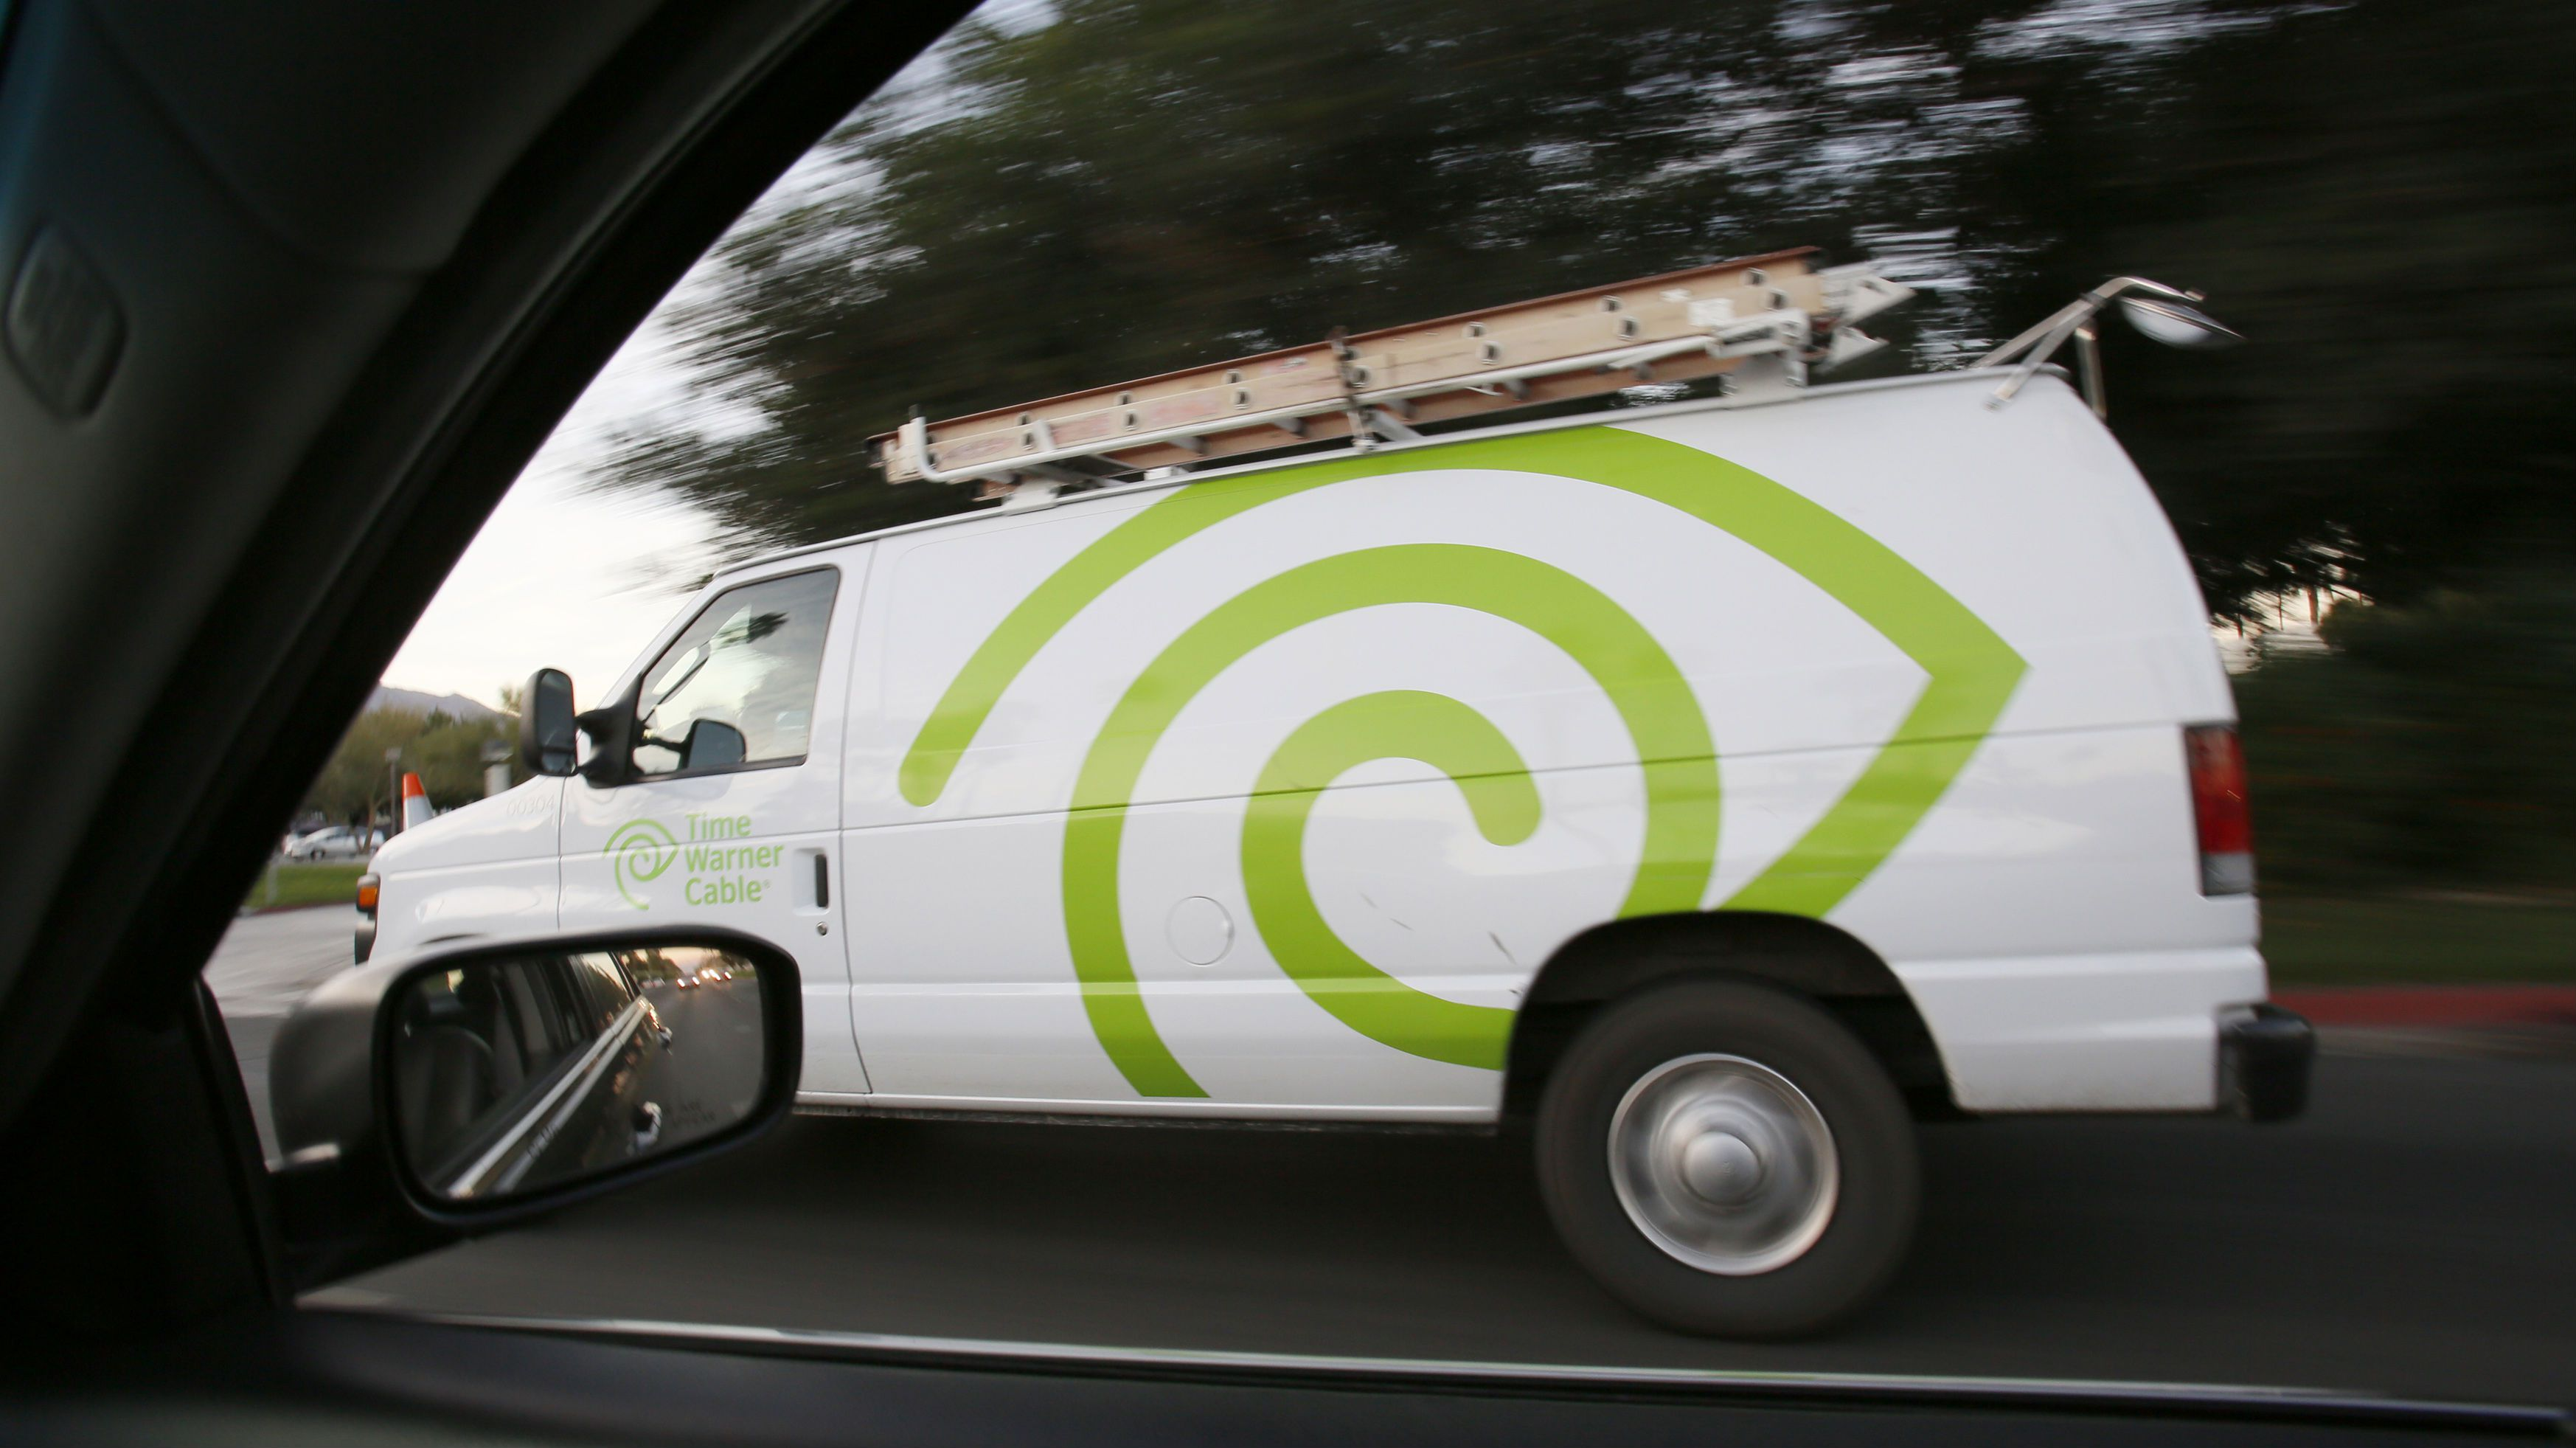 The cable guy's secrets: Technician claiming to work for Time Warner